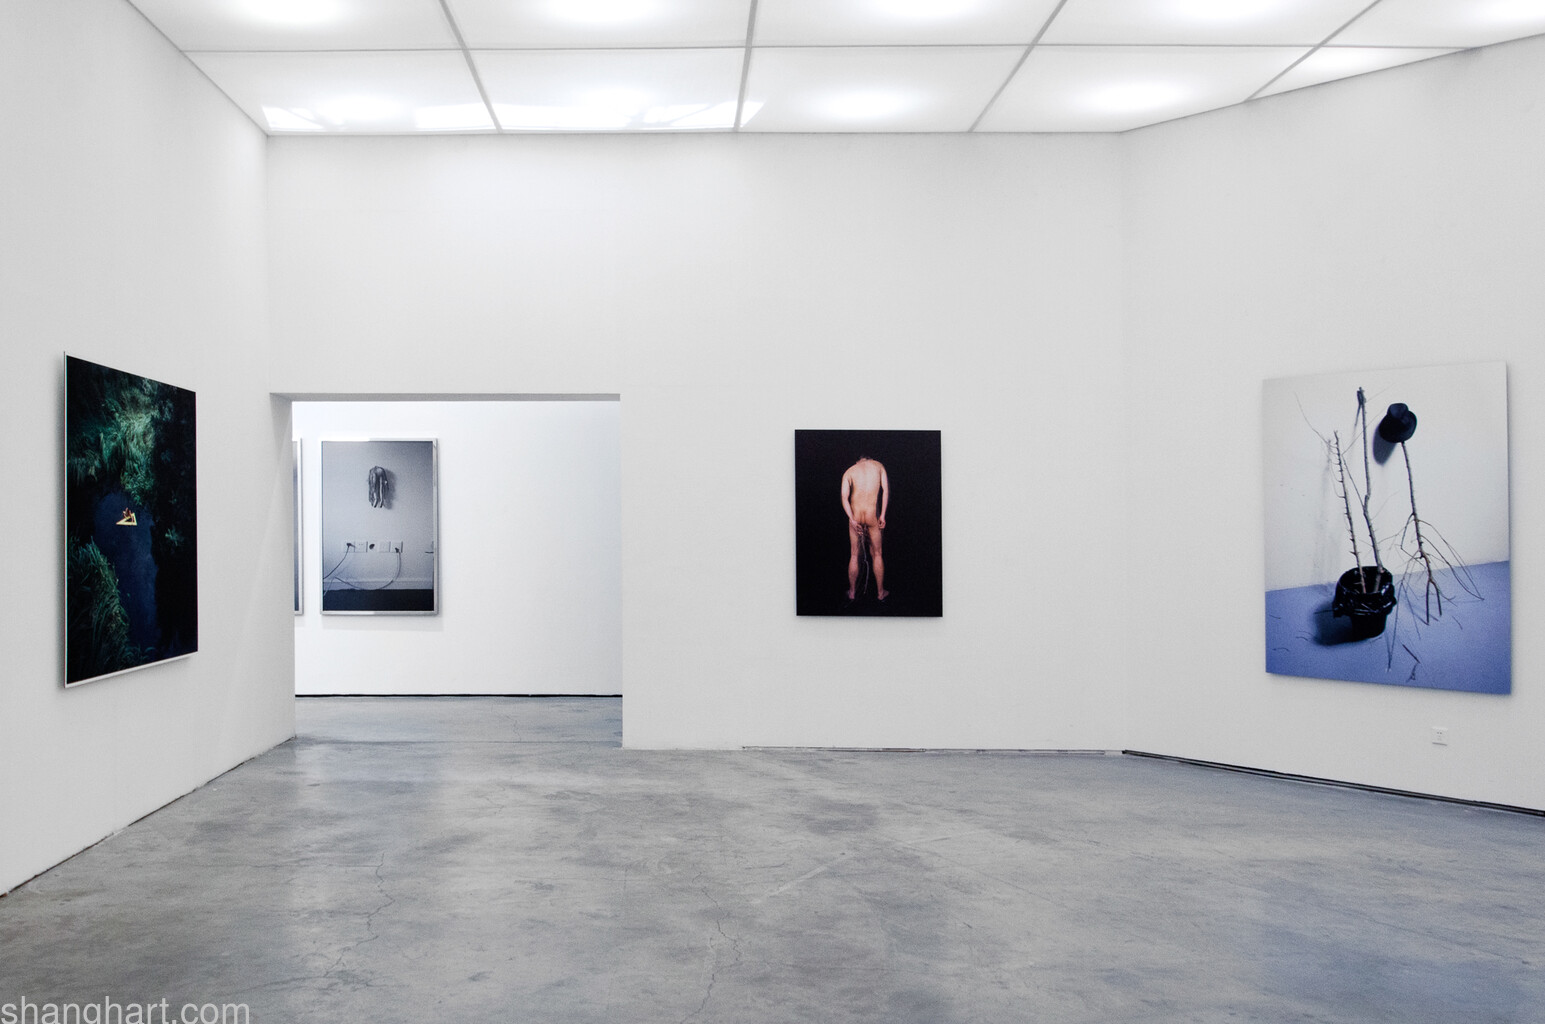 "Installation View, From Left: CHENG Xiaoyun"" Right-angle Turn"" 2009, LAING Yue""sssssss series"" 2008, CHENG Xiaoyun""'Zhuiku Tablet'series"" 2pcs 2012"